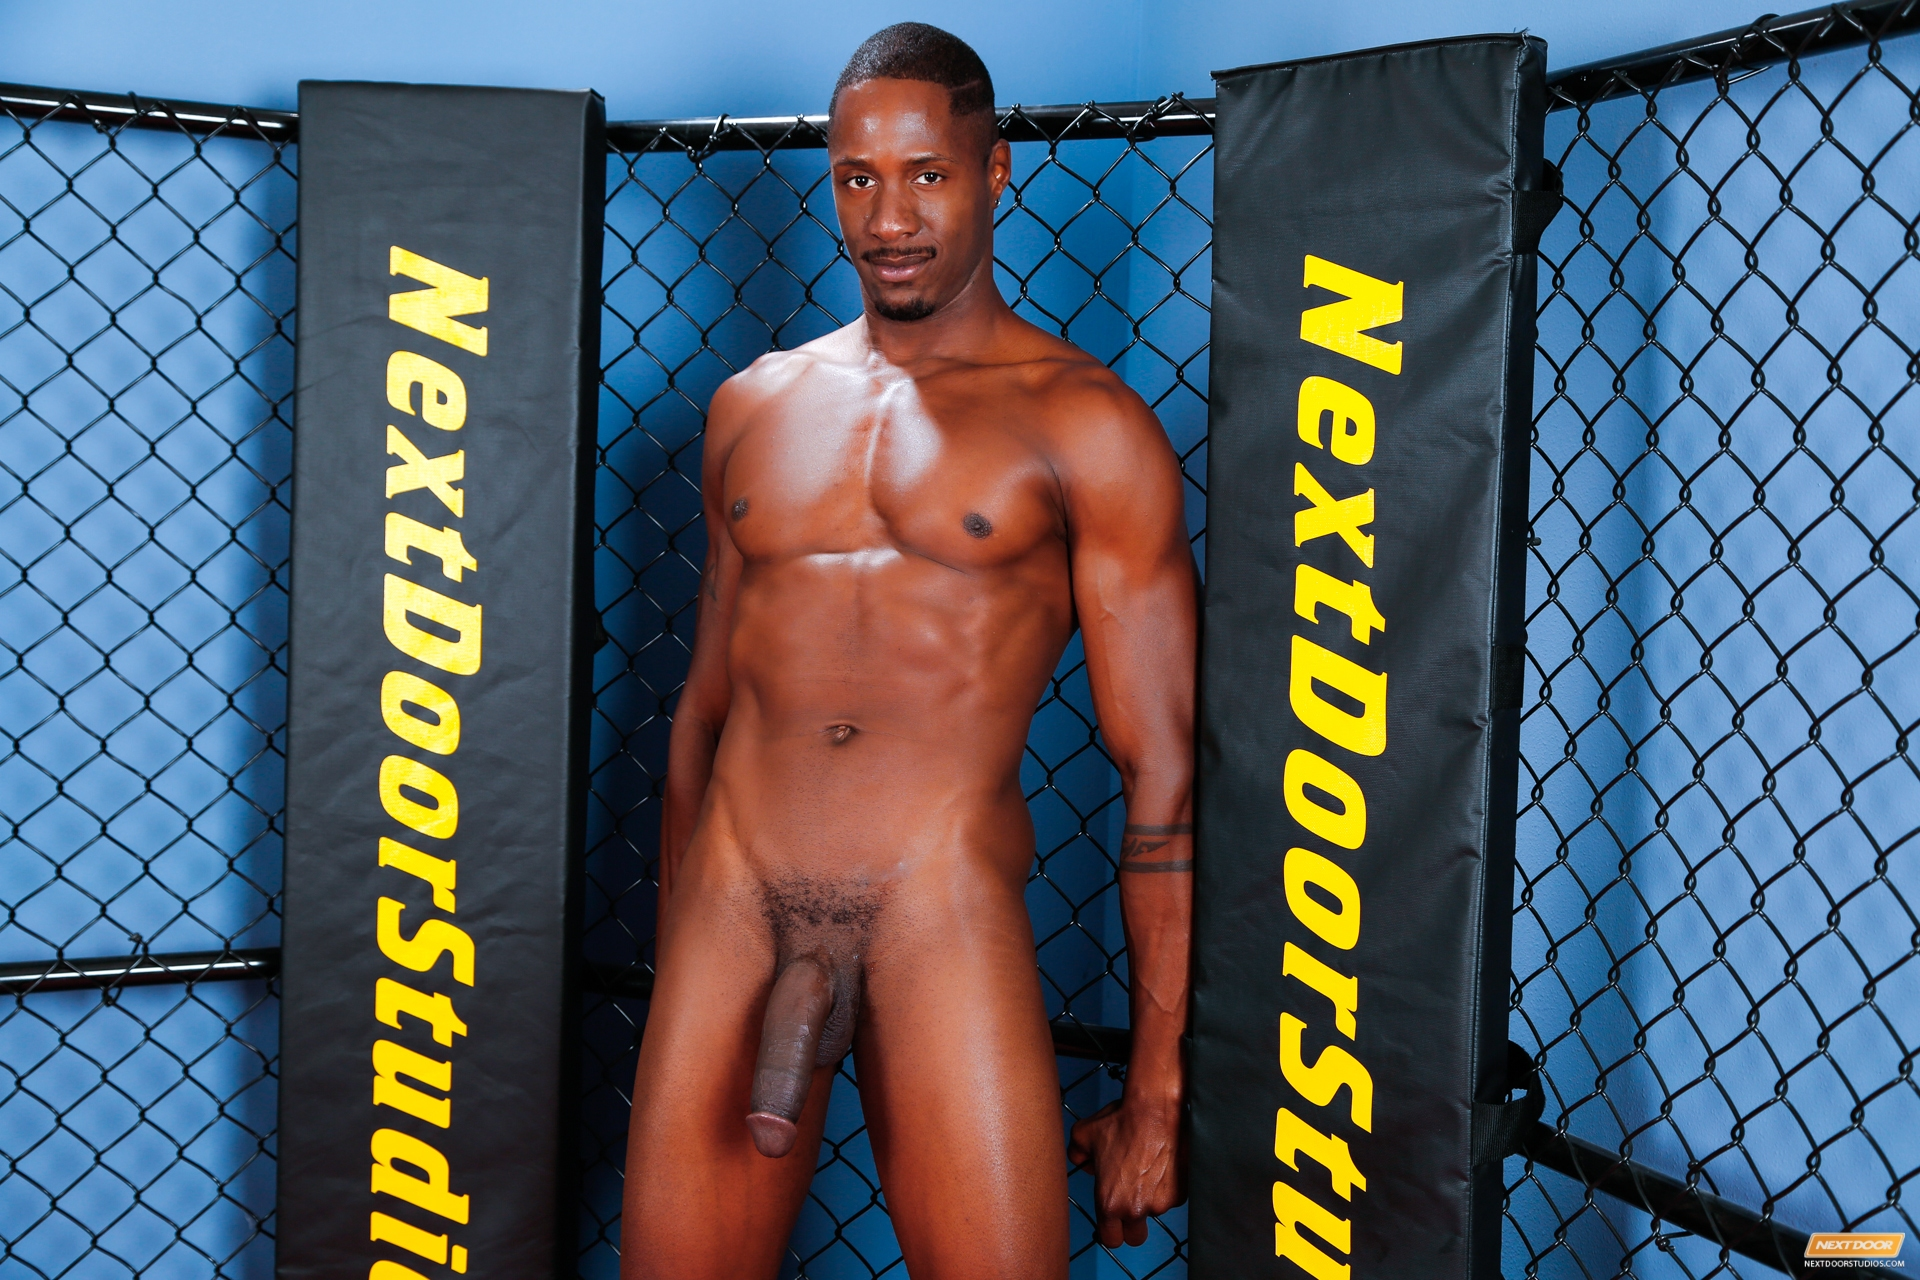 Interracial black male strippers come